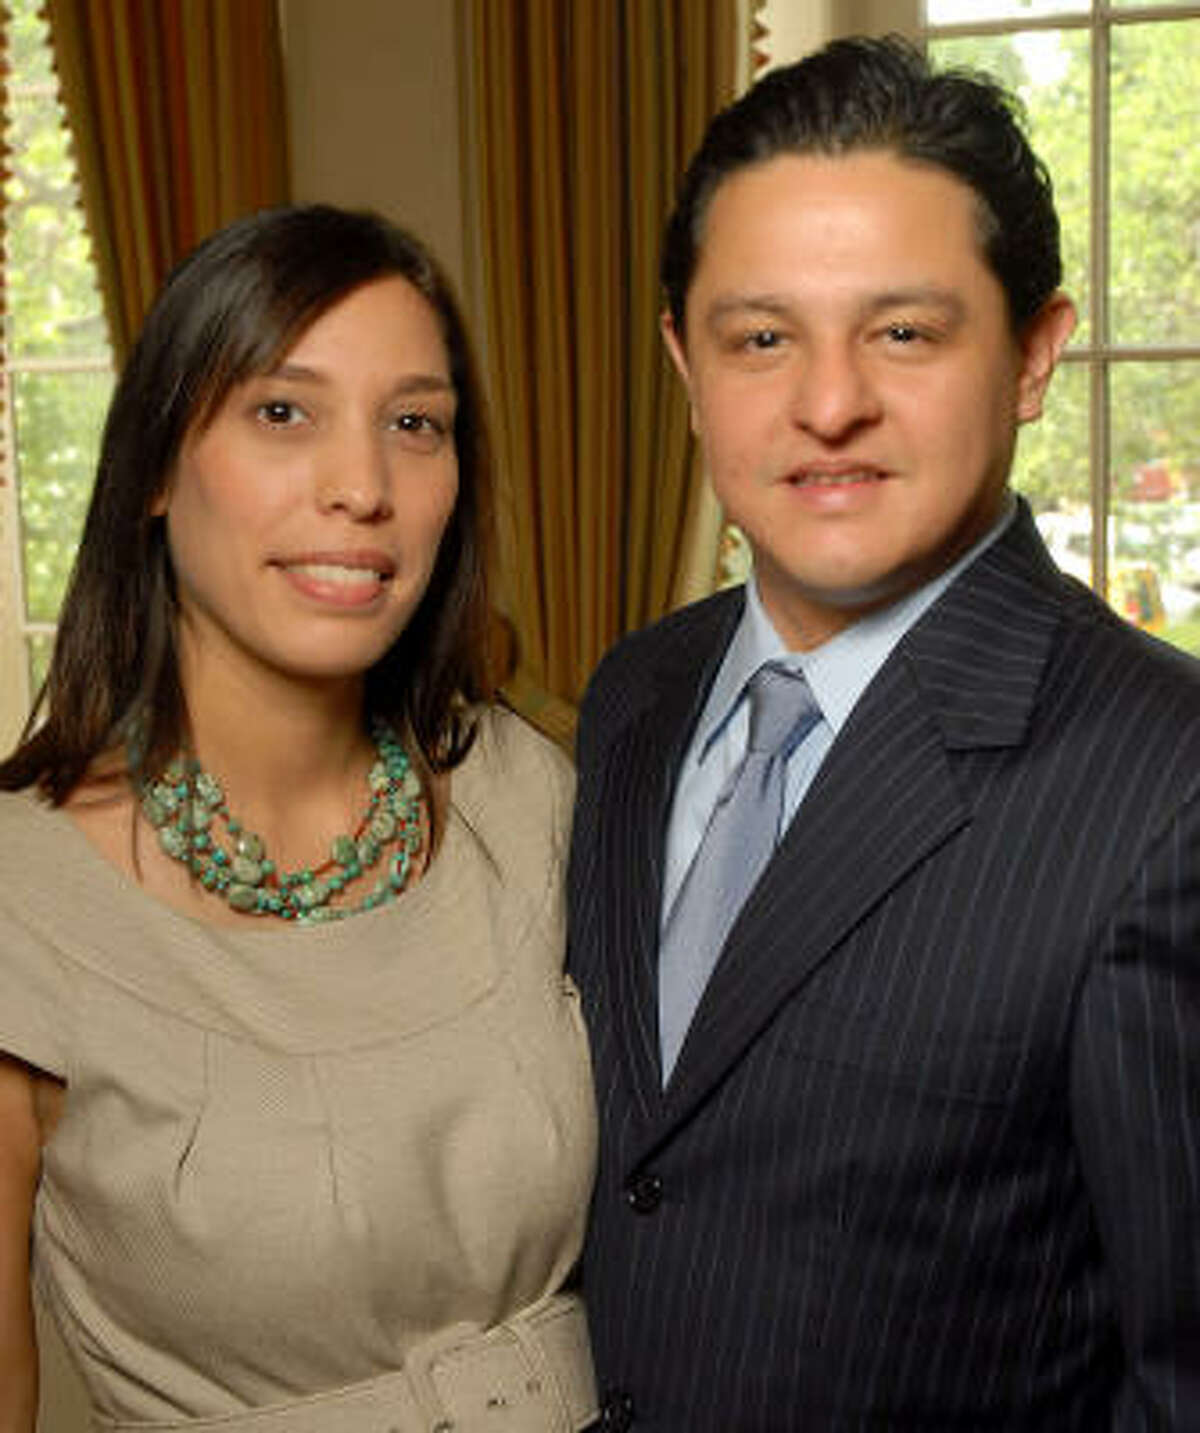 Former Houston Councilman James Rodriguez, shown with Wendy Montoya Rodrigues at a 2009 social event, has been tapped as chief of staff to Pasadena's incoming mayor, Jeff Wagner.